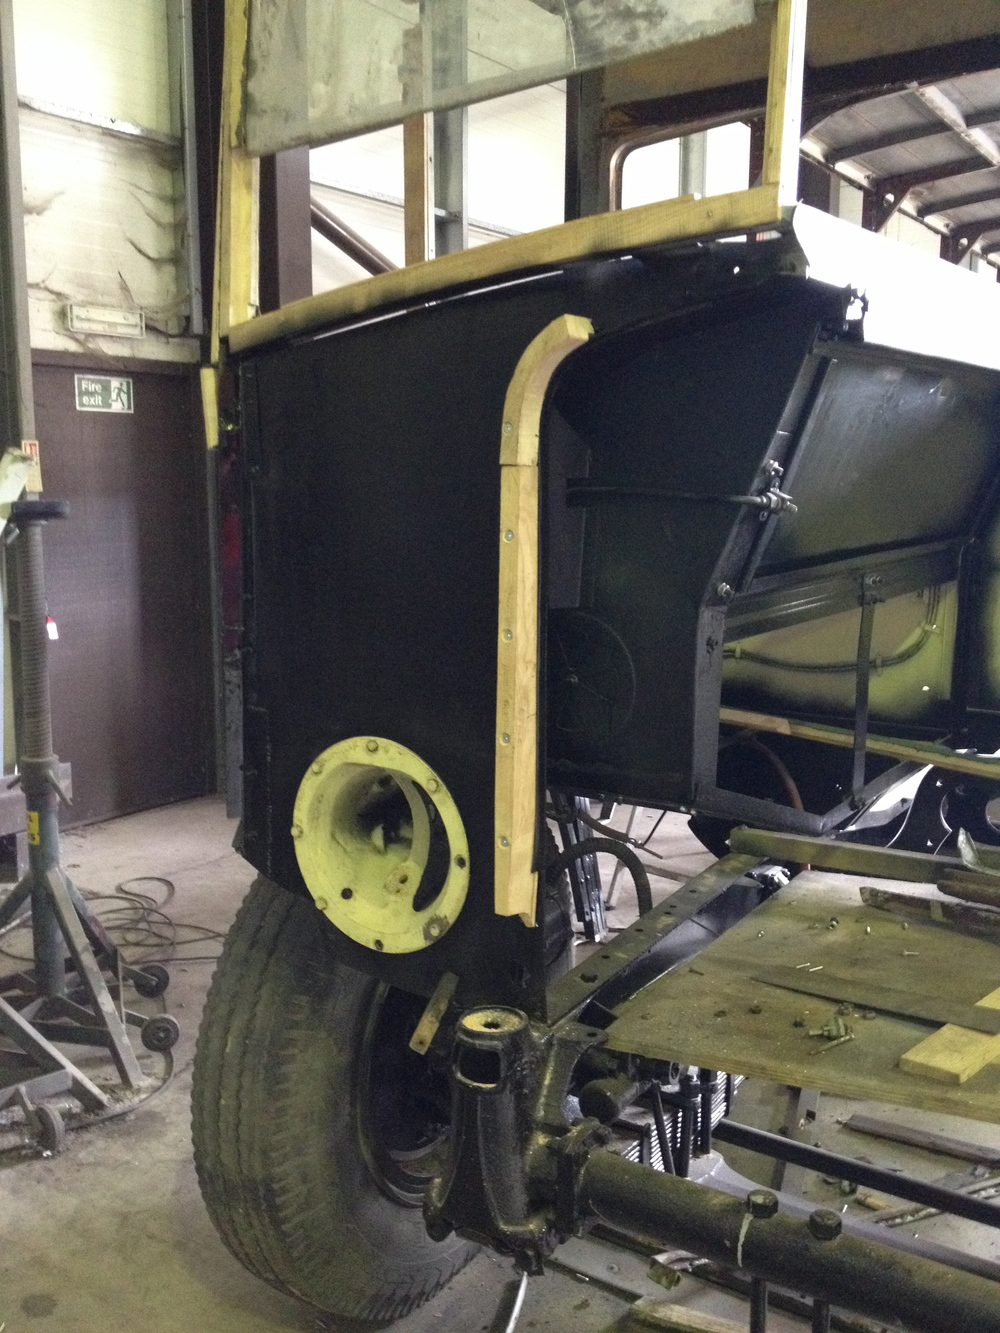 The cab has been the subject of much deliberation, with some complex shapes which were heavily corroded and so not easily copied.  However the three-dimensional inner wing was triumphantly installed in mid-May and has stiffened up the whole cab to great effect.